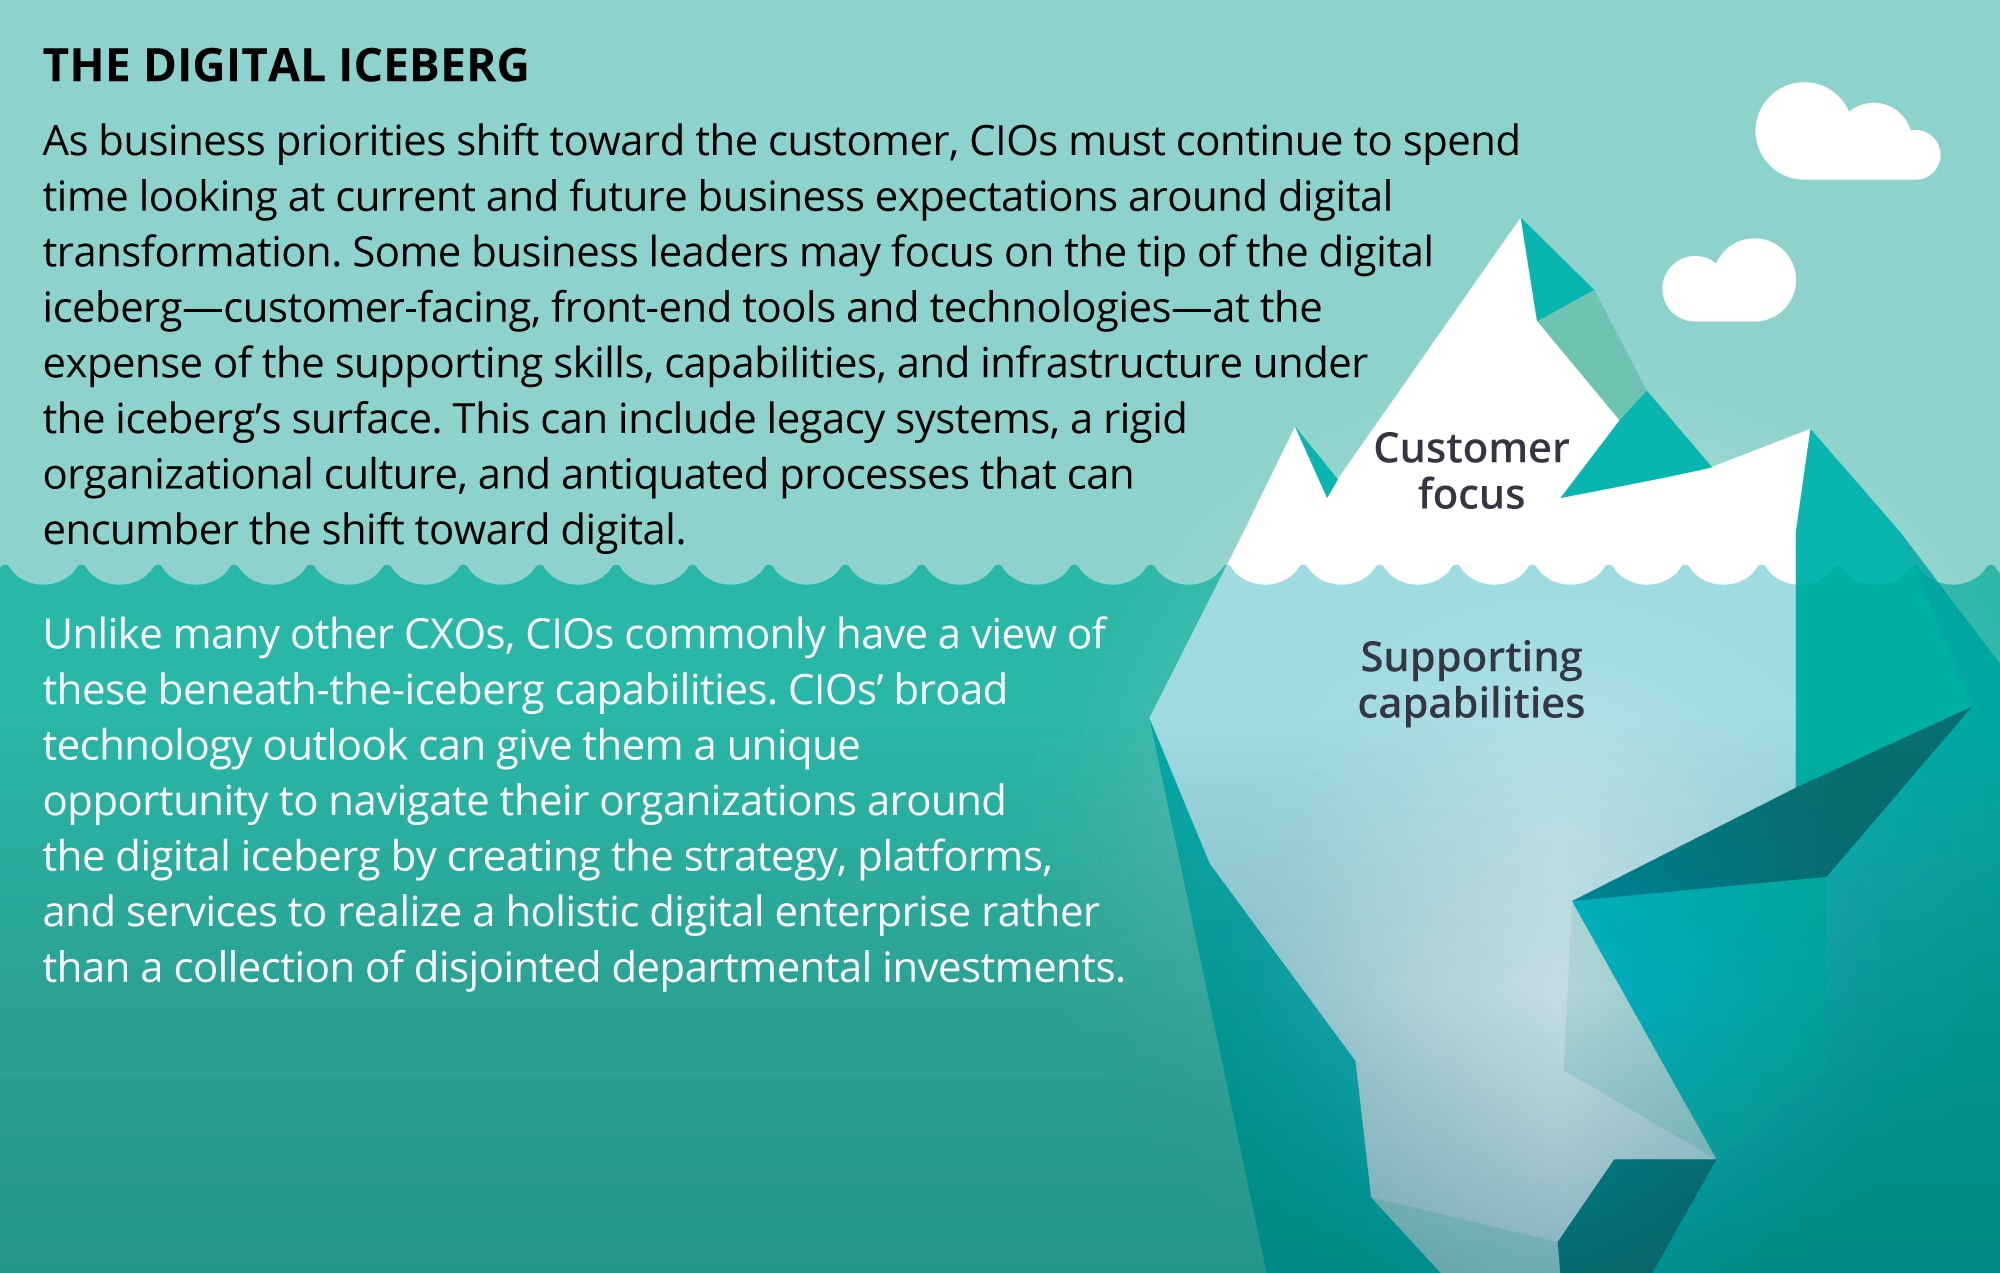 The Digital Iceberg